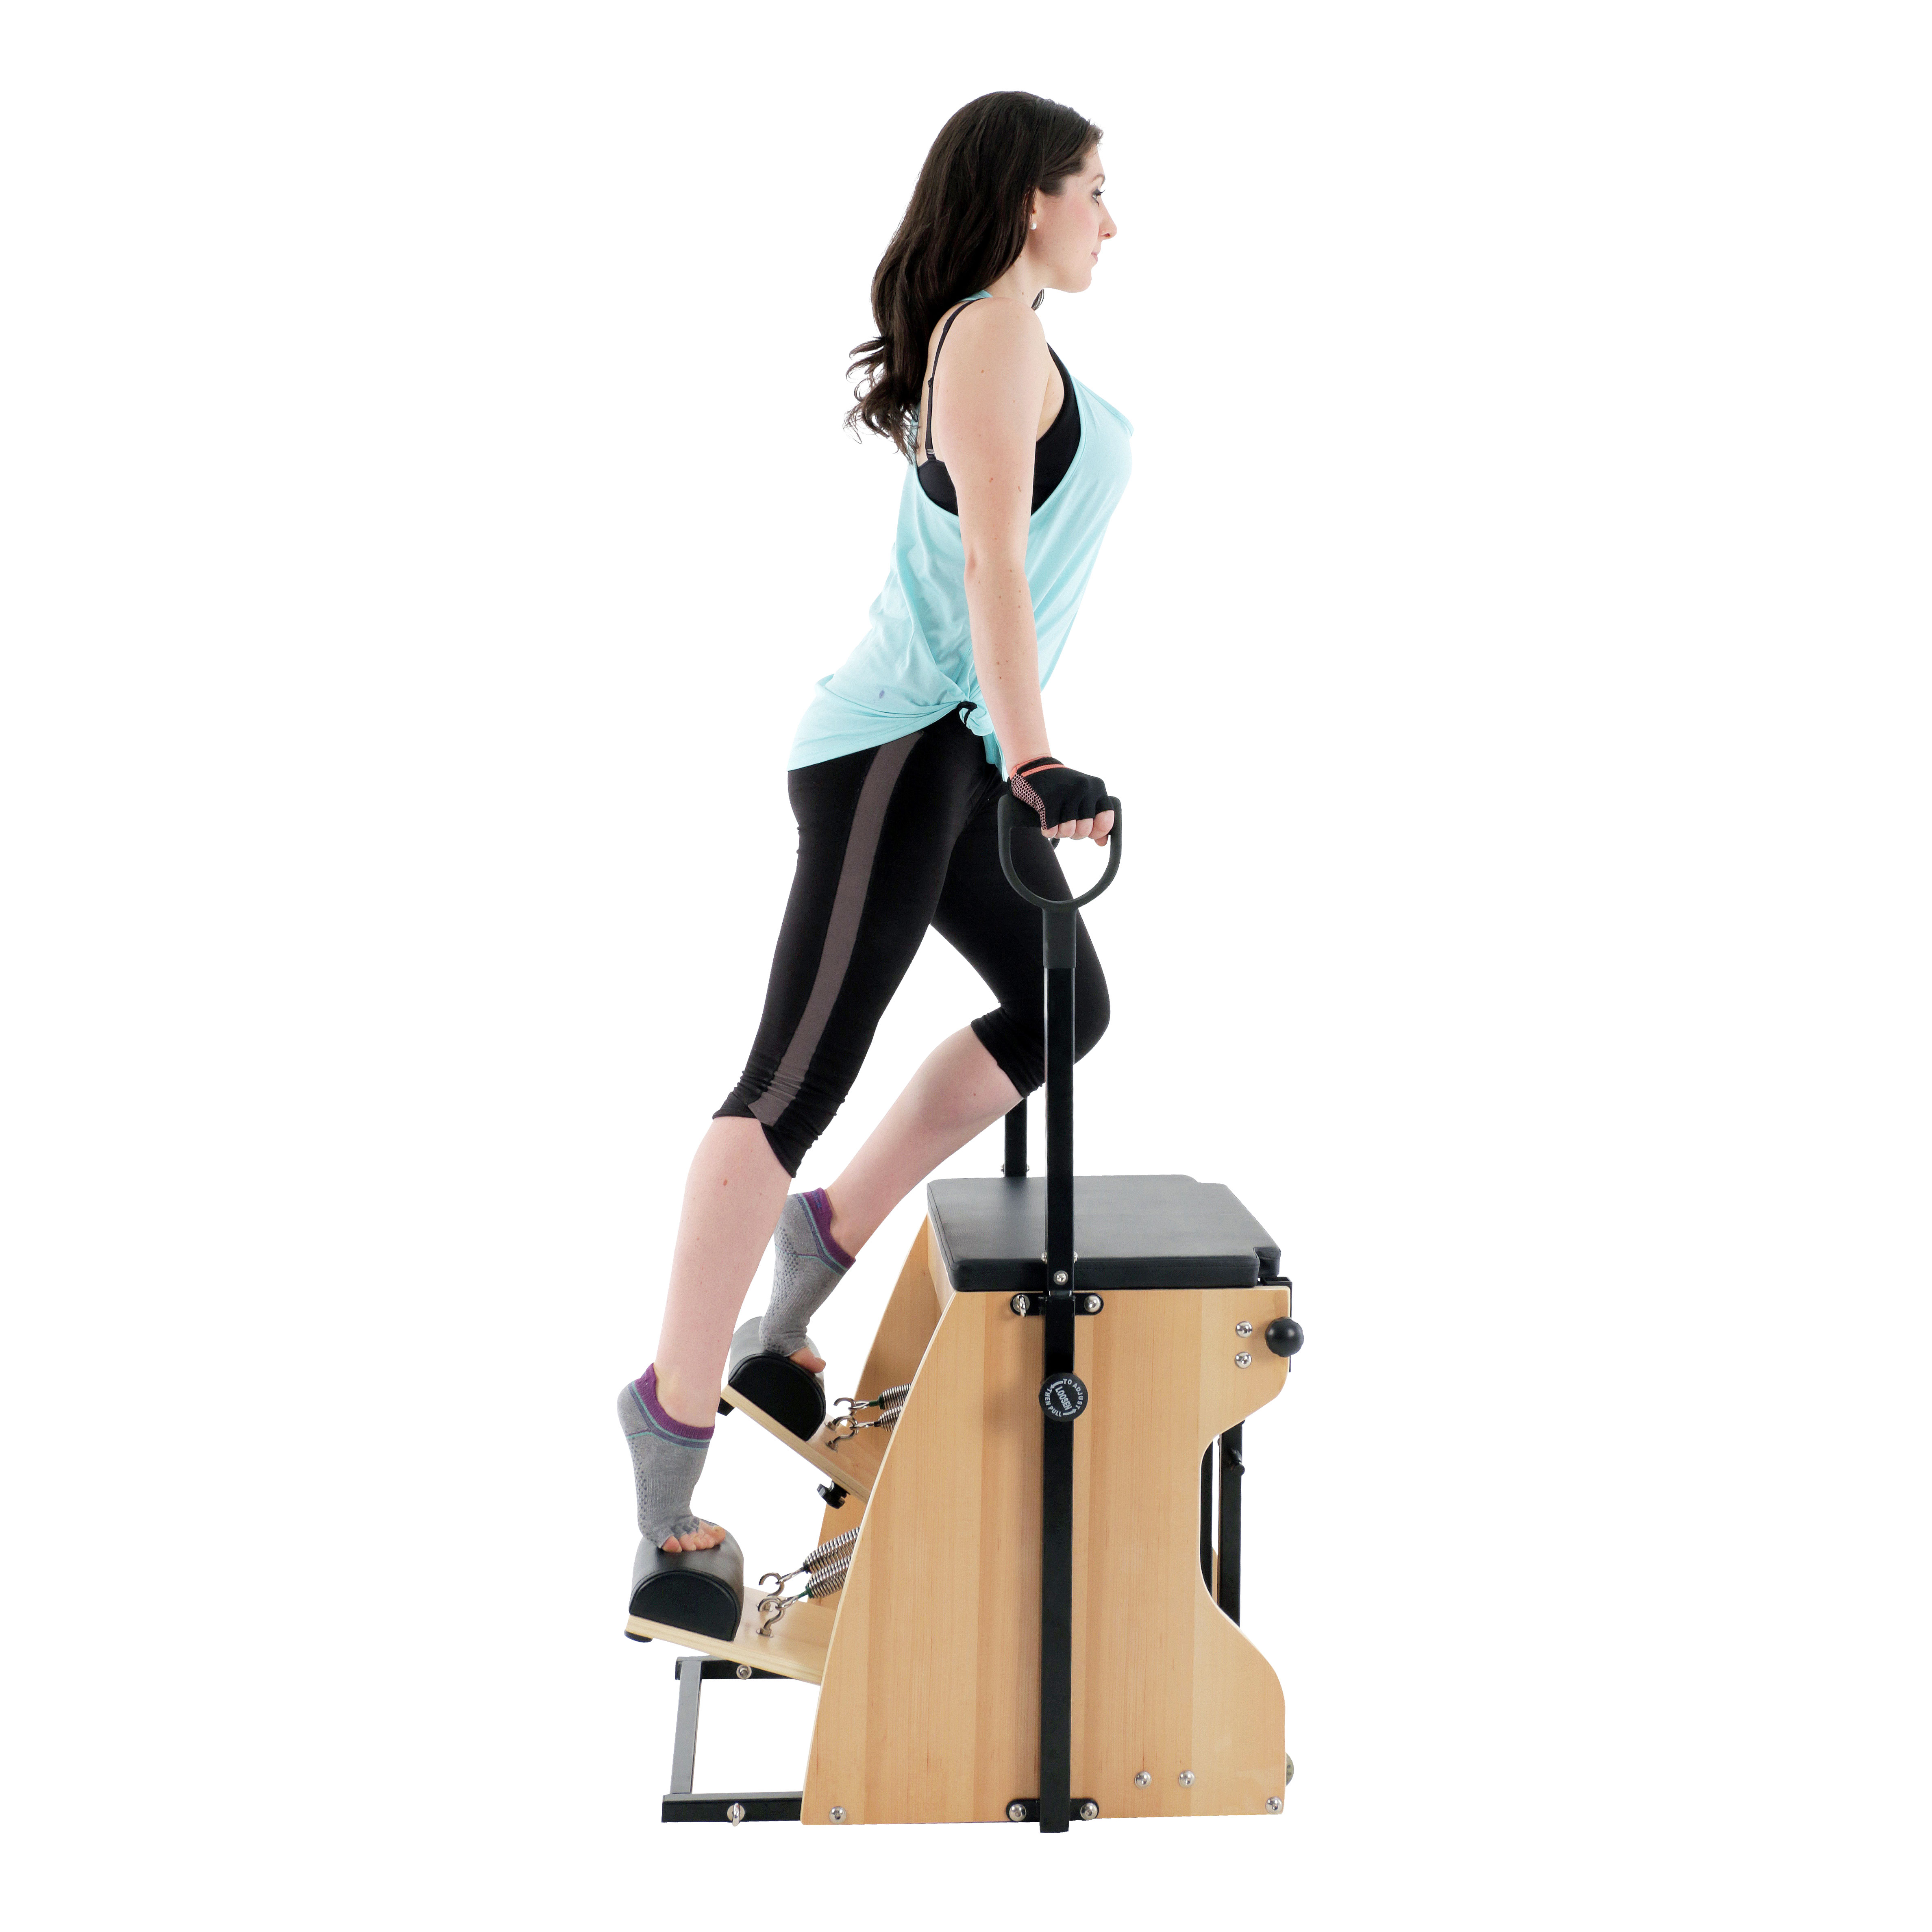 Buy Pilates Combo Chair Online: Align Pilates Combo Chair II, Flat Pack